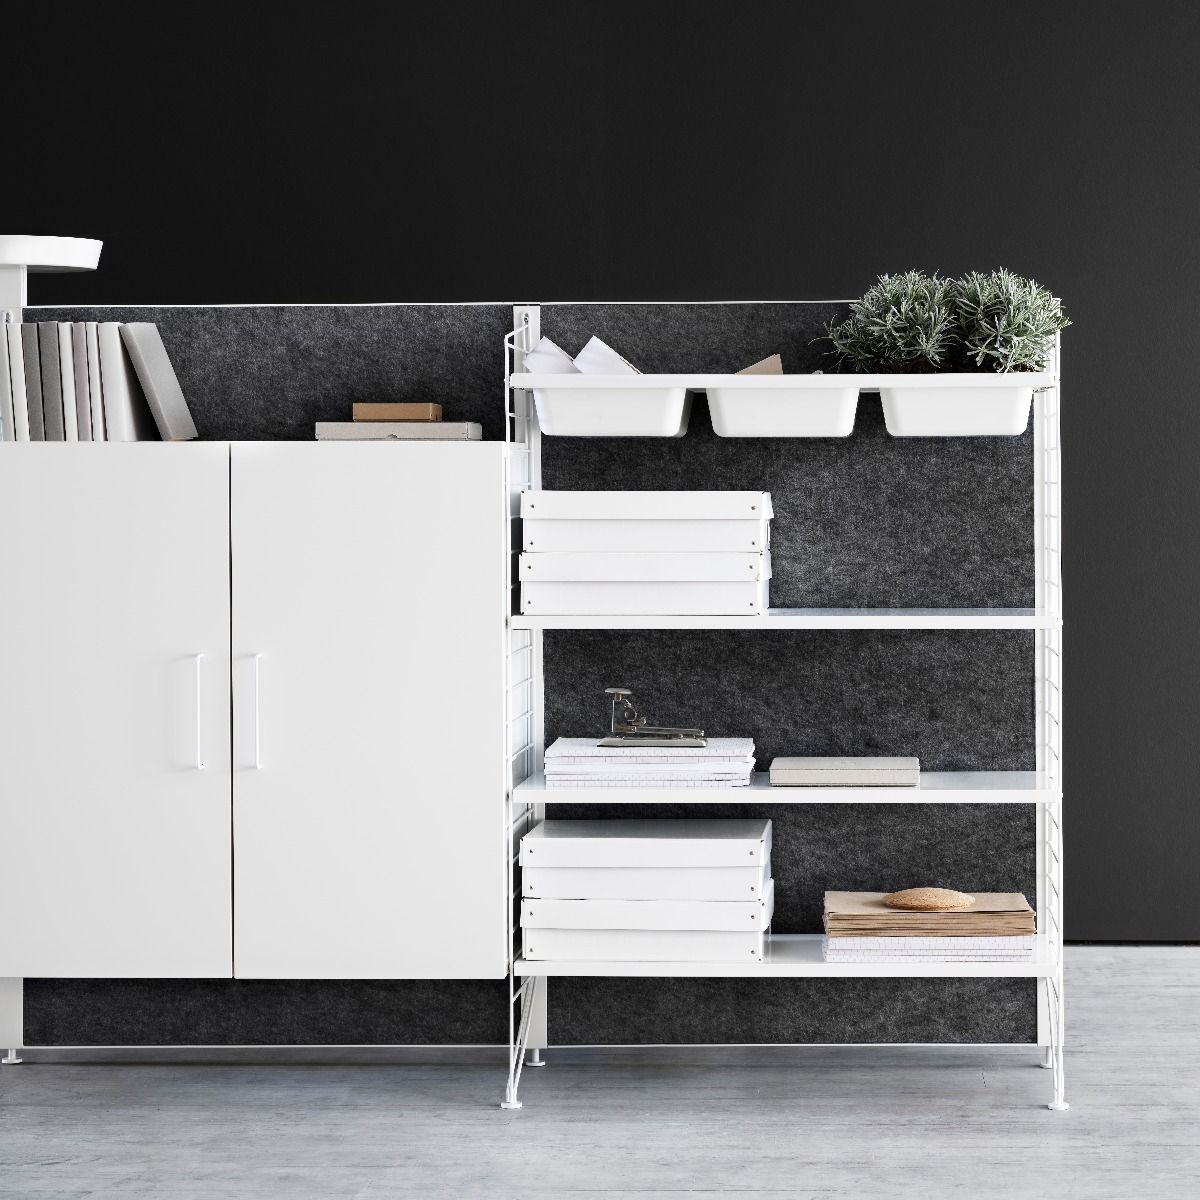 String works fabric screen with filing cabinet